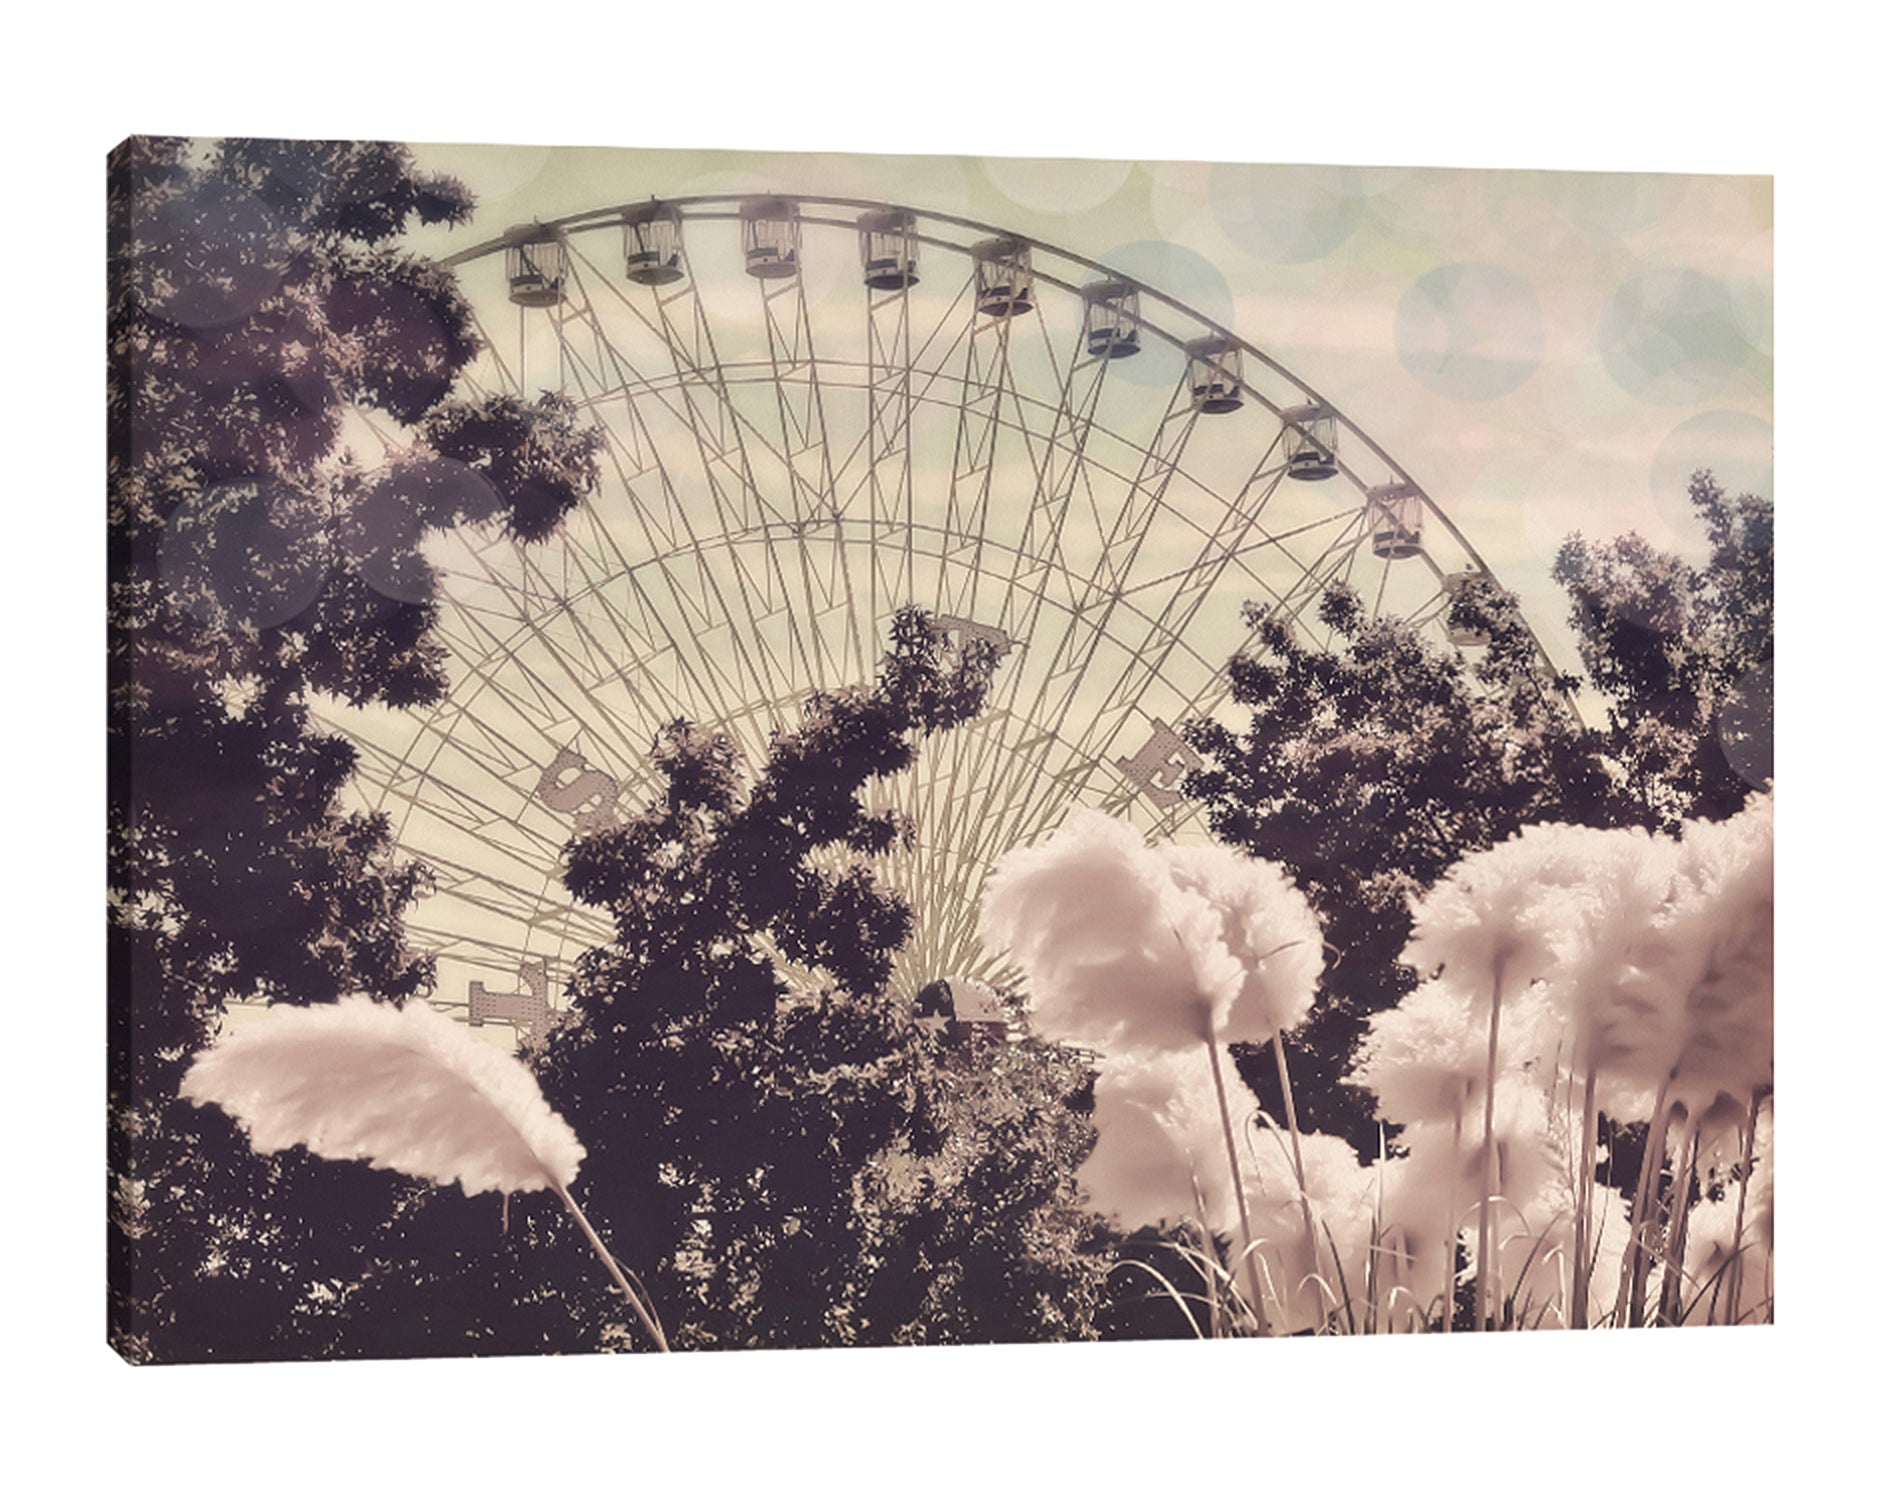 Ashley-Davis,Modern & Contemporary,Entertainment,Floral & Botanical,ferris wheel,carnival,carnival rides,trees,tree,feathers,skies,clouds,Charcoal Gray,Black,Mint Green,White,Gray